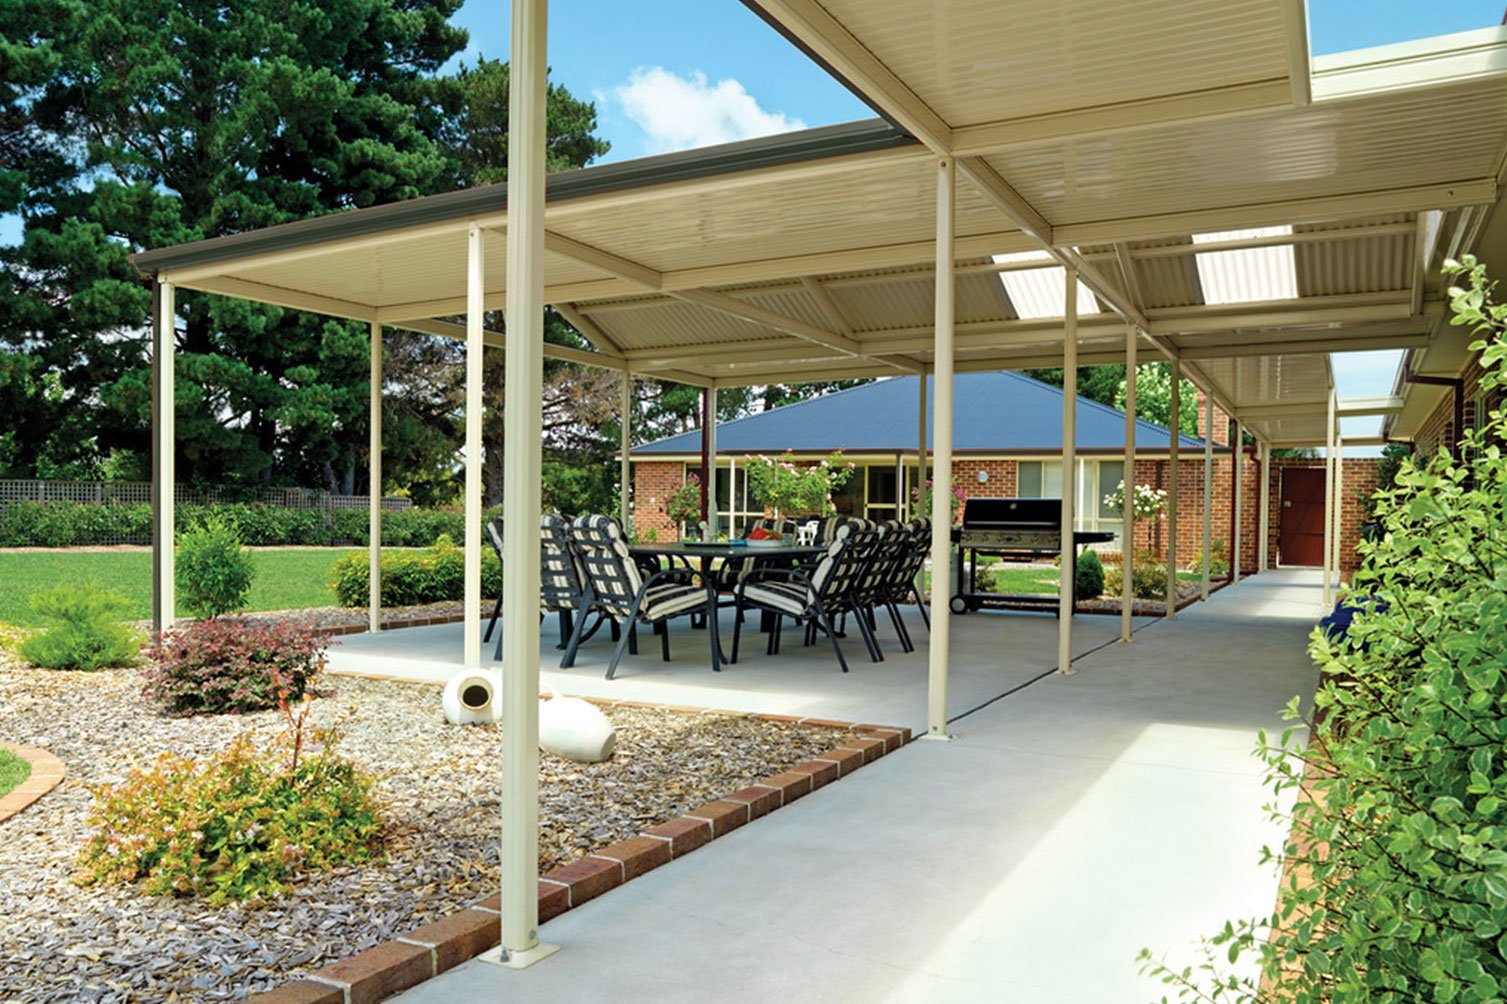 The warmth of daylight when under the roof patio in Murwillumbah